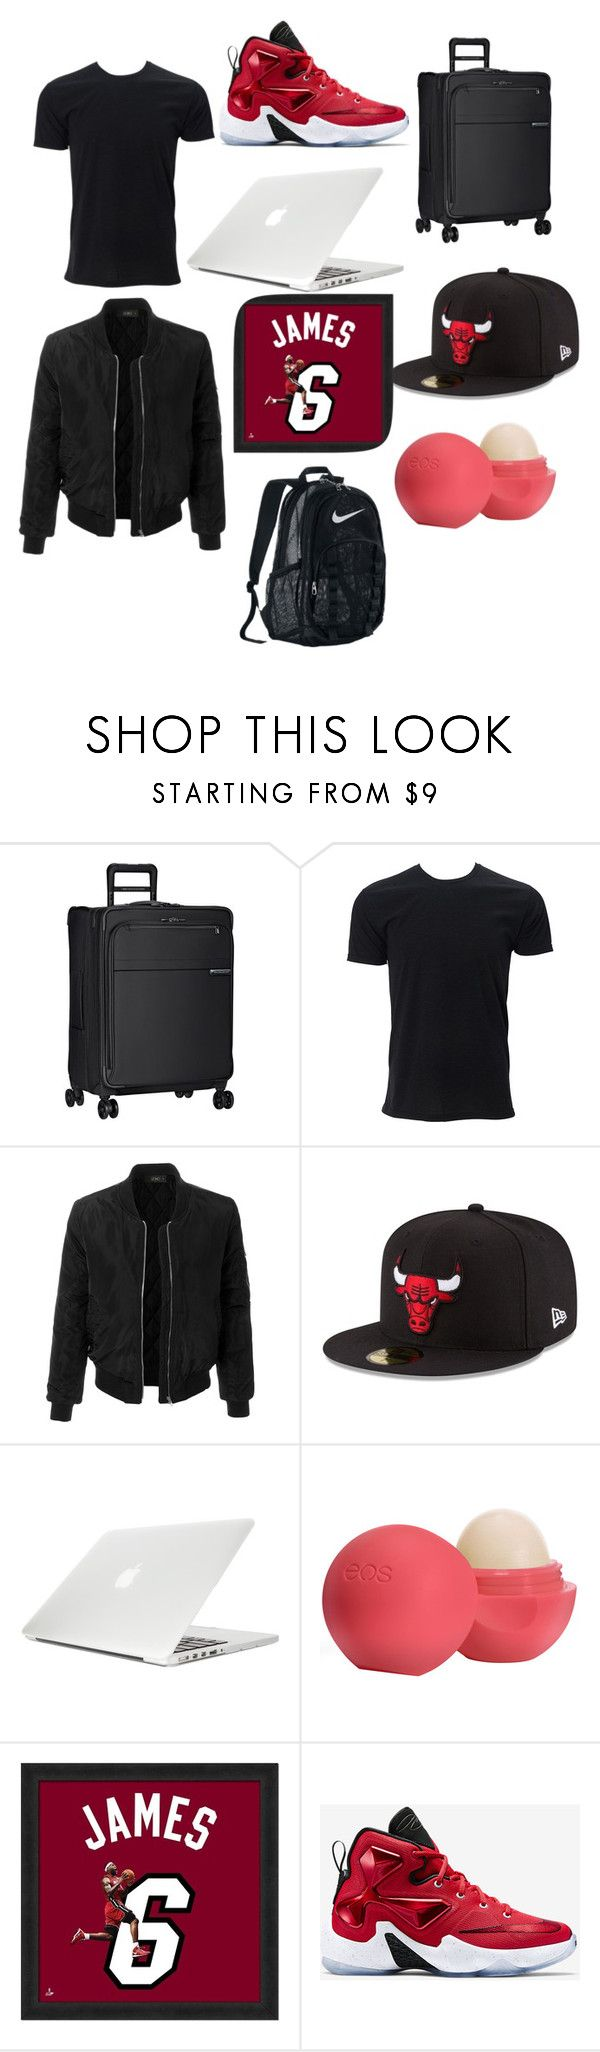 """out of town 💼✌😎🔫📟"" by masonjonesjr333 ❤ liked on Polyvore featuring Briggs & Riley, LE3NO, New Era, Moshi, Eos, SO, NIKE, men's fashion and menswear"